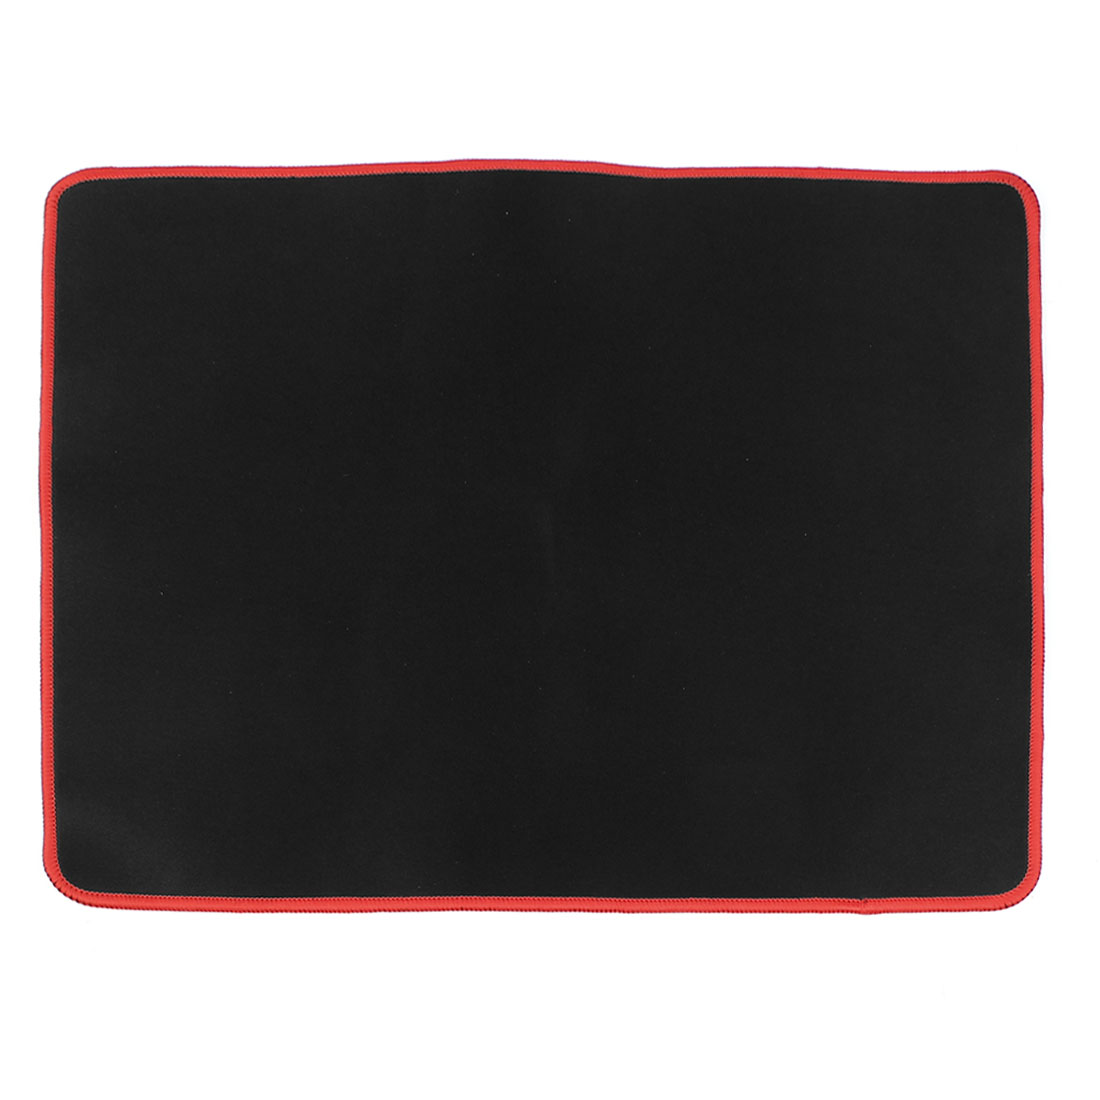 Black Red 440mmx350mmx3mm Nonslip Soft Neoprene Desktop Computer Game Mouse Pad